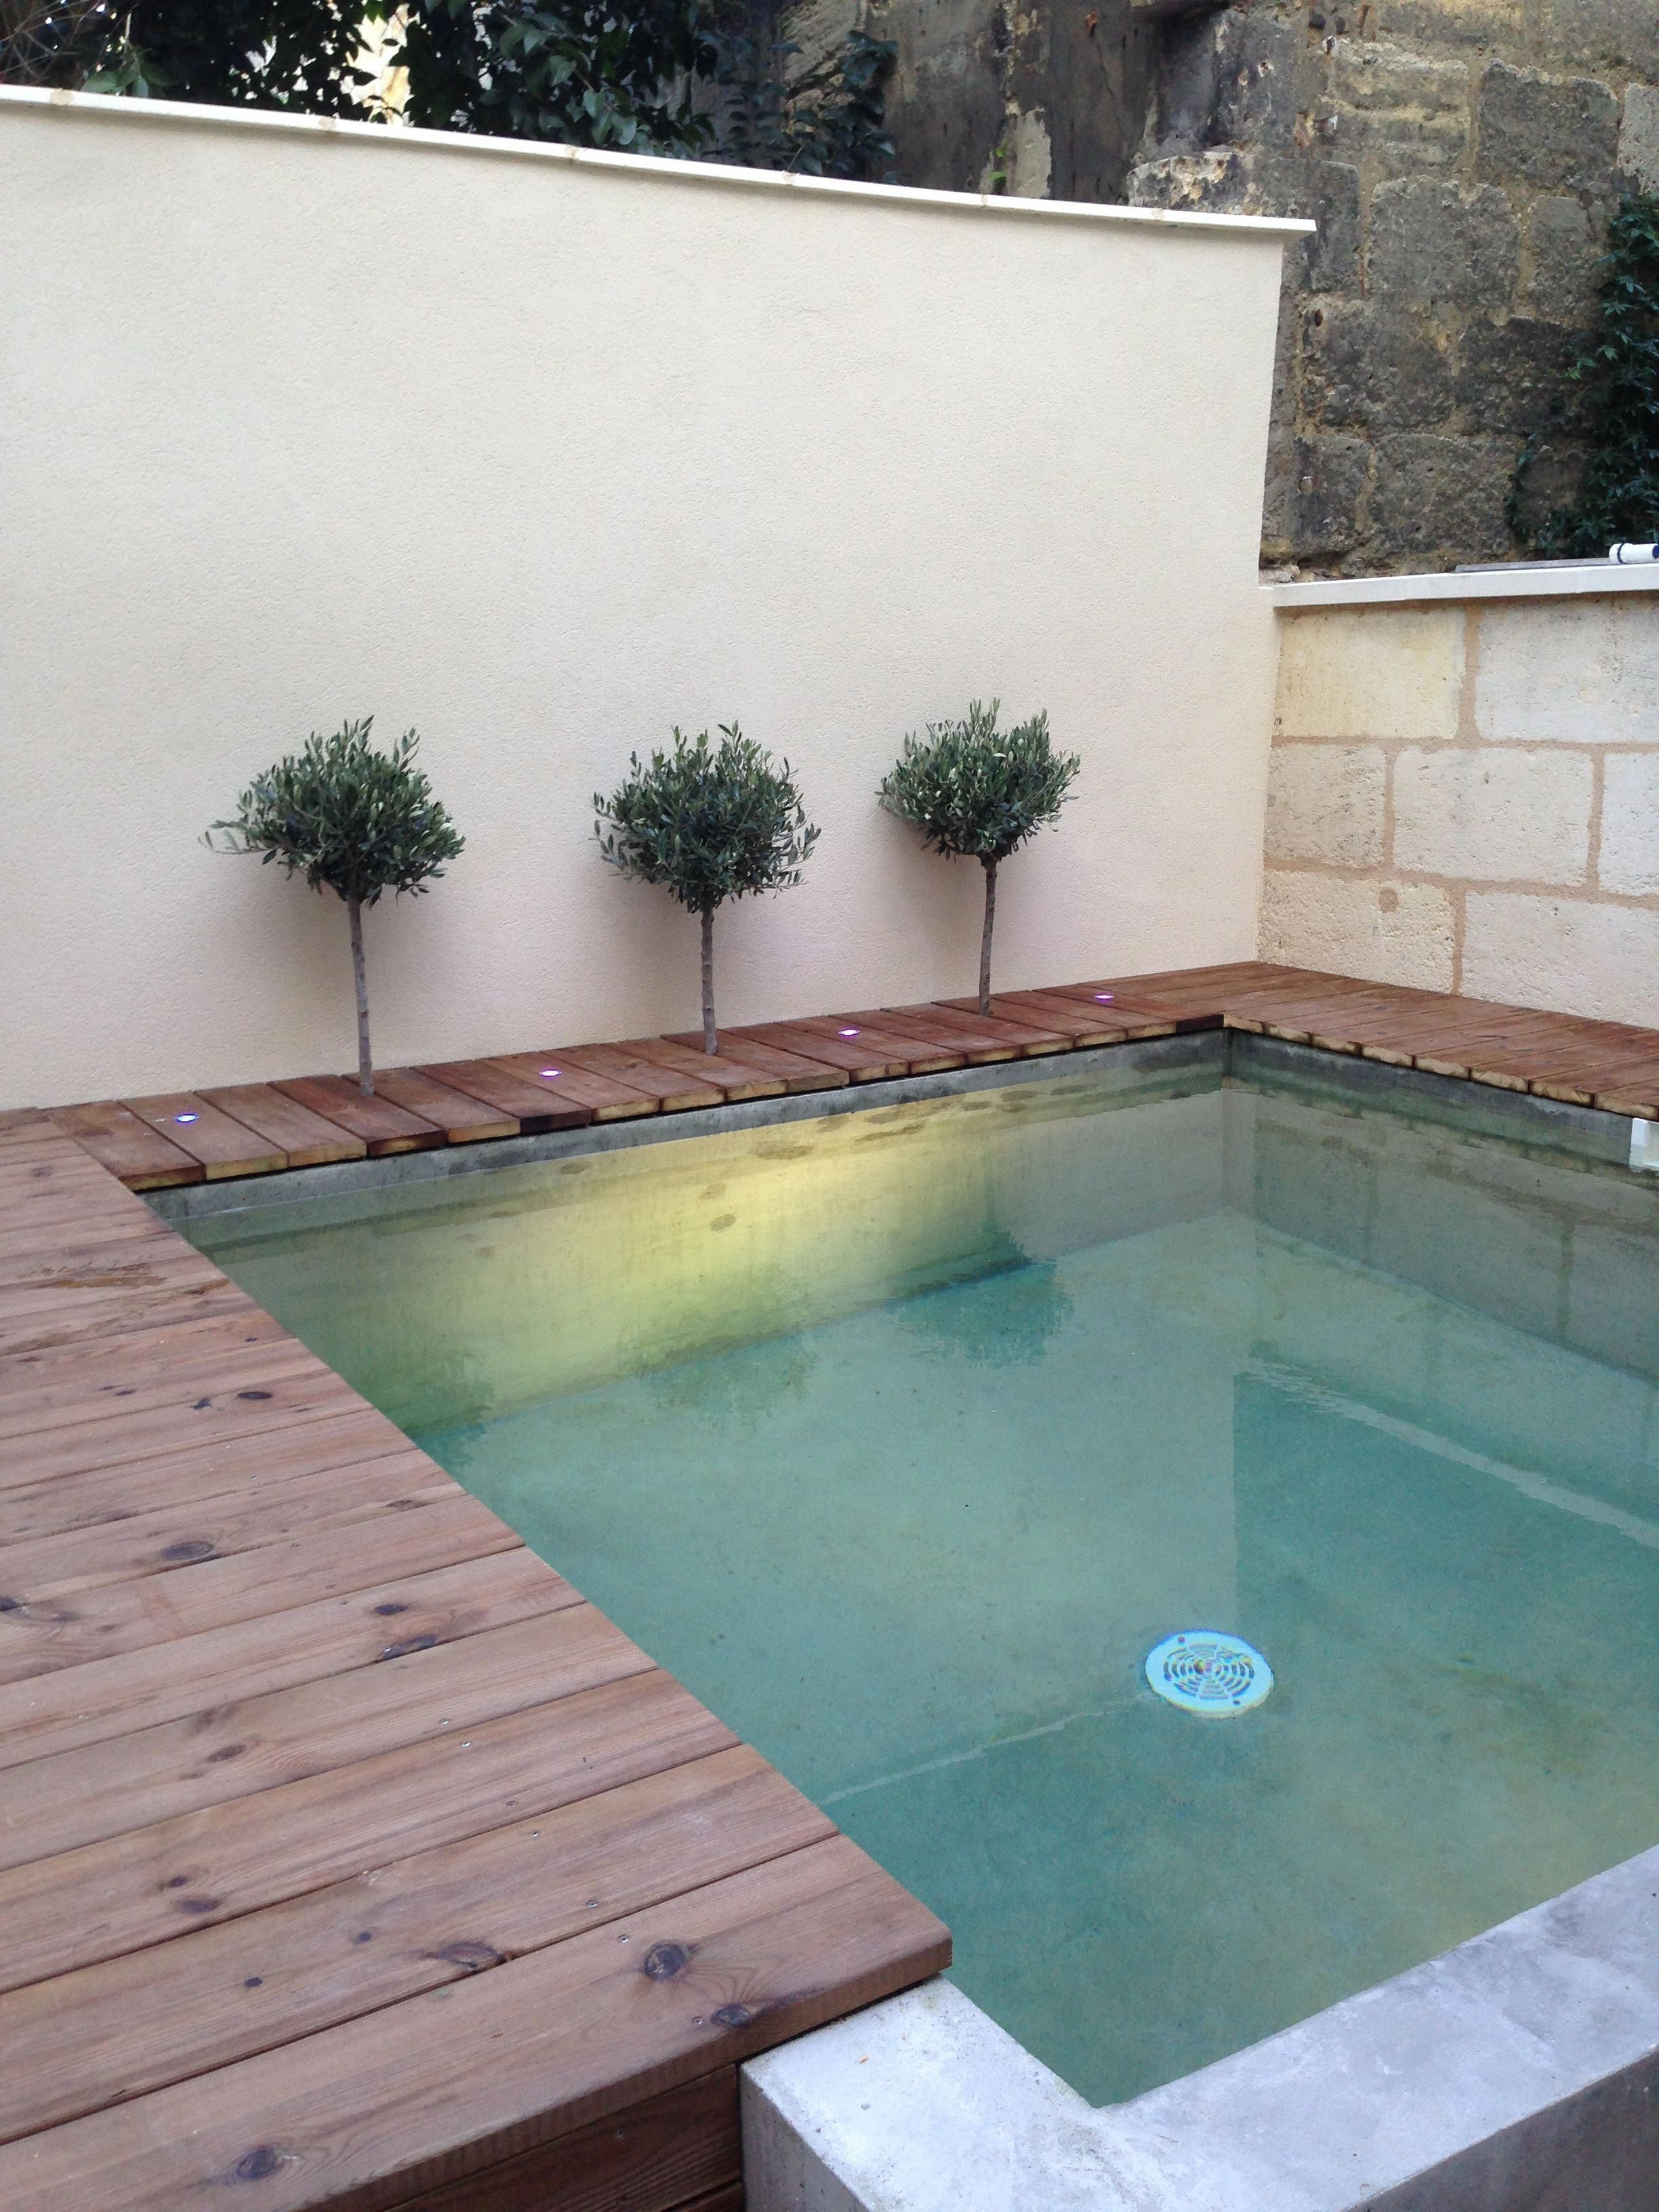 Determine More Details On Outdoor Patio Ideas Decorating Visit Our Internet Site Outdoorpatioideasde Small Backyard Pools Backyard Pool Small Pool Design